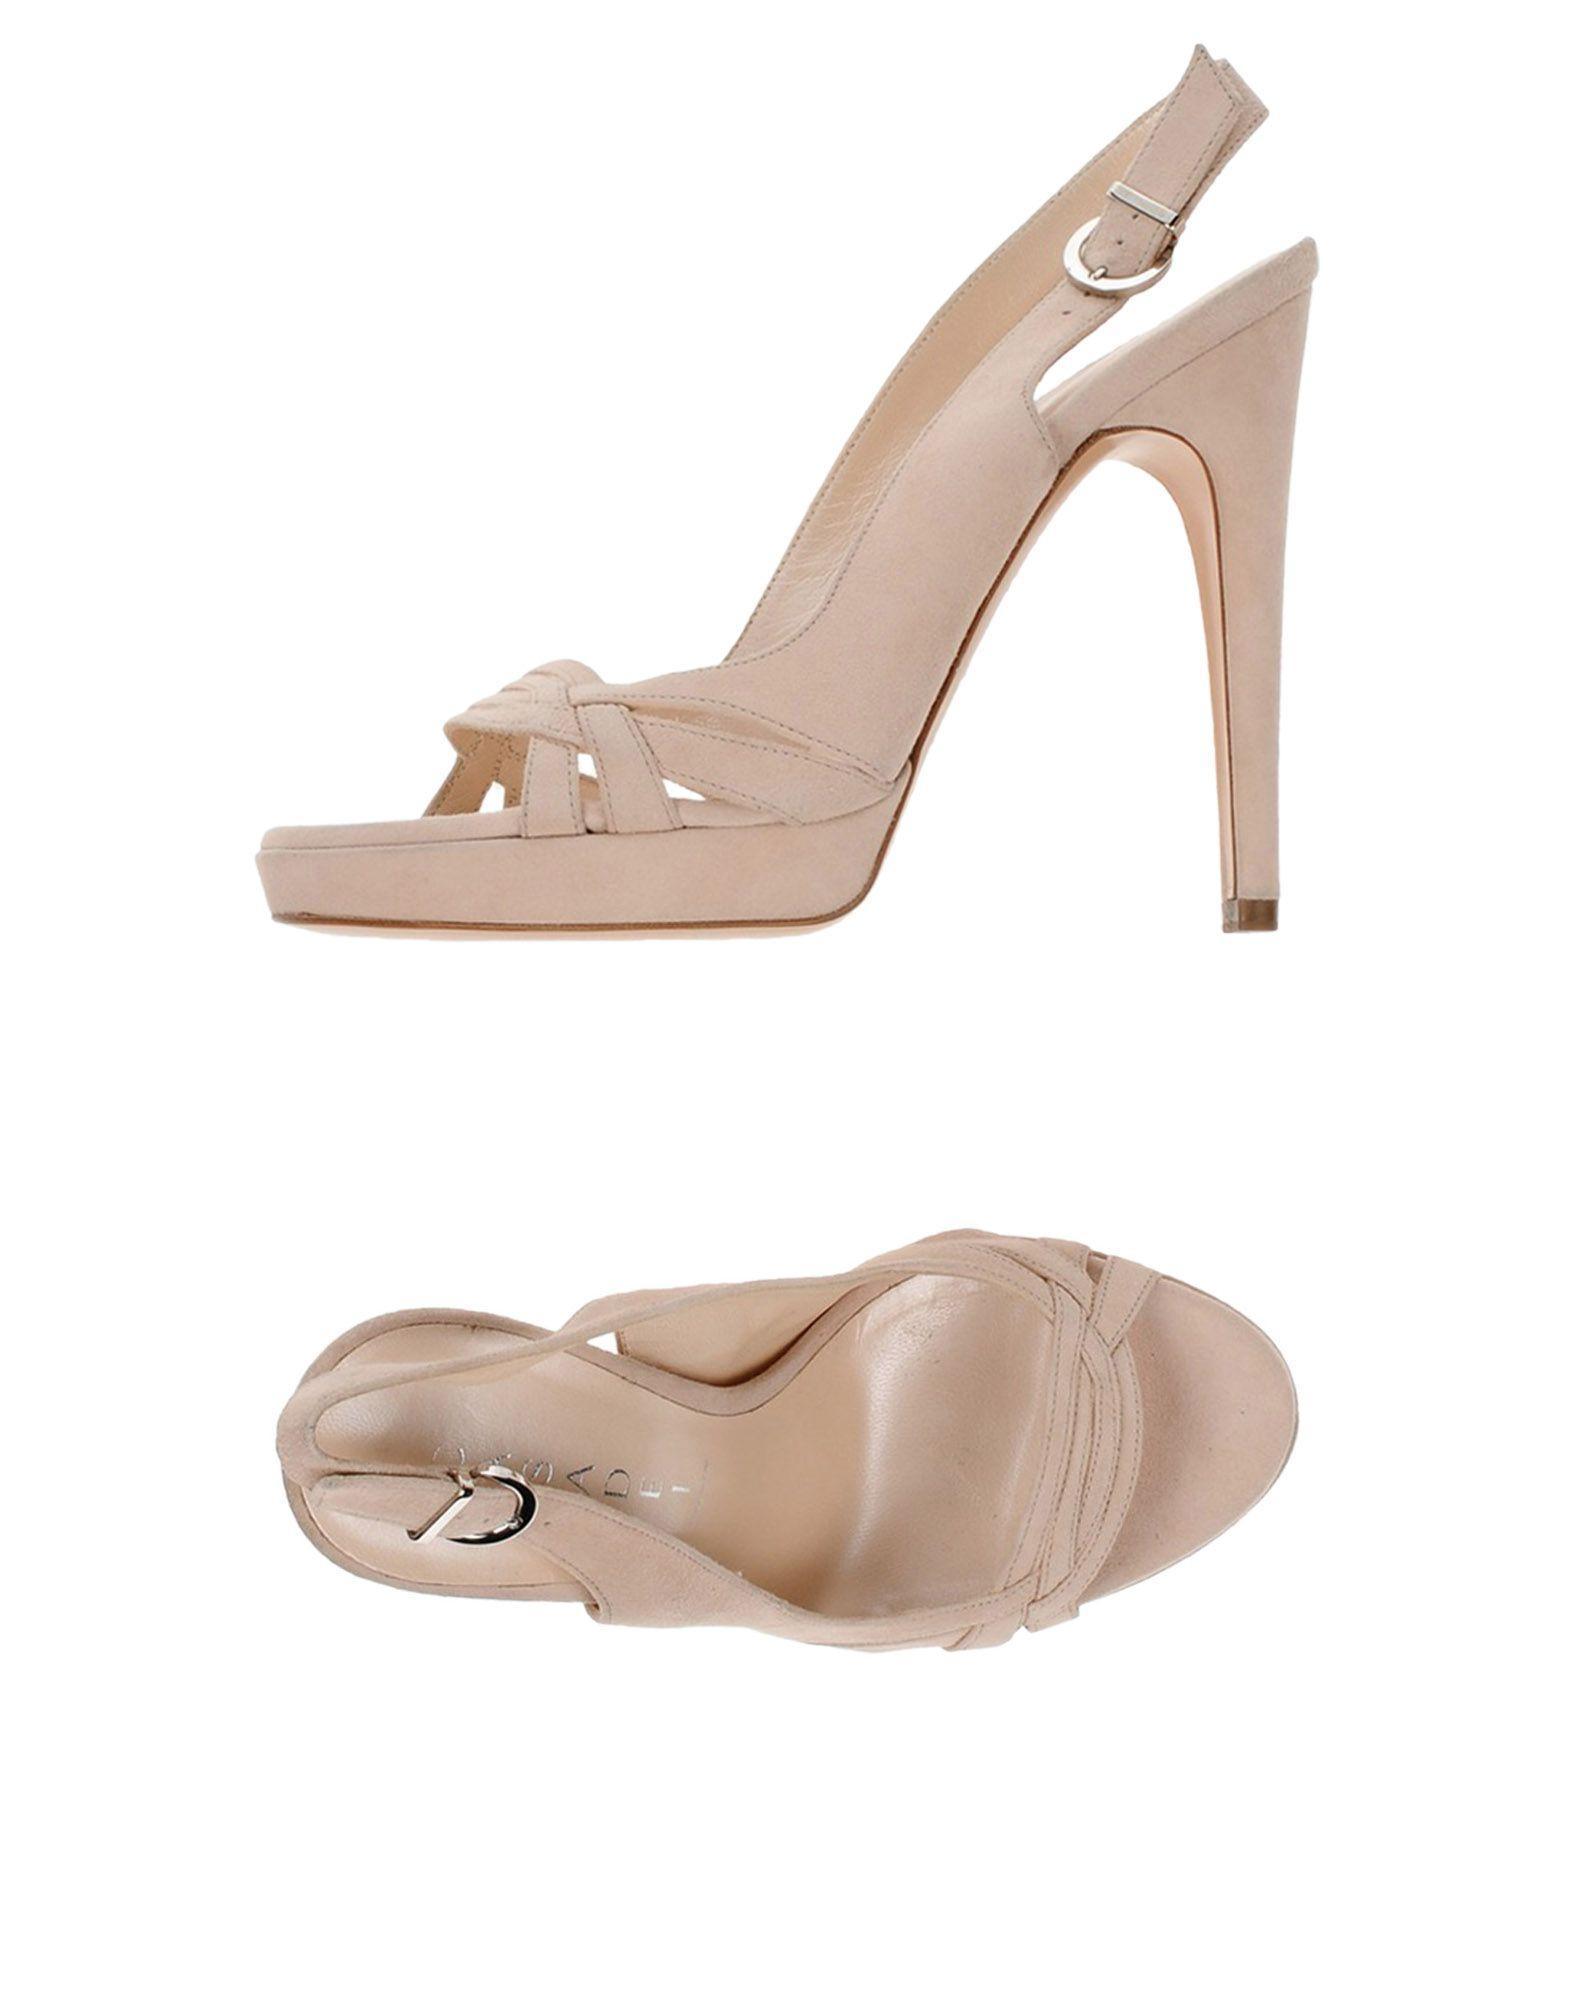 Casadei Sandals In Light Pink